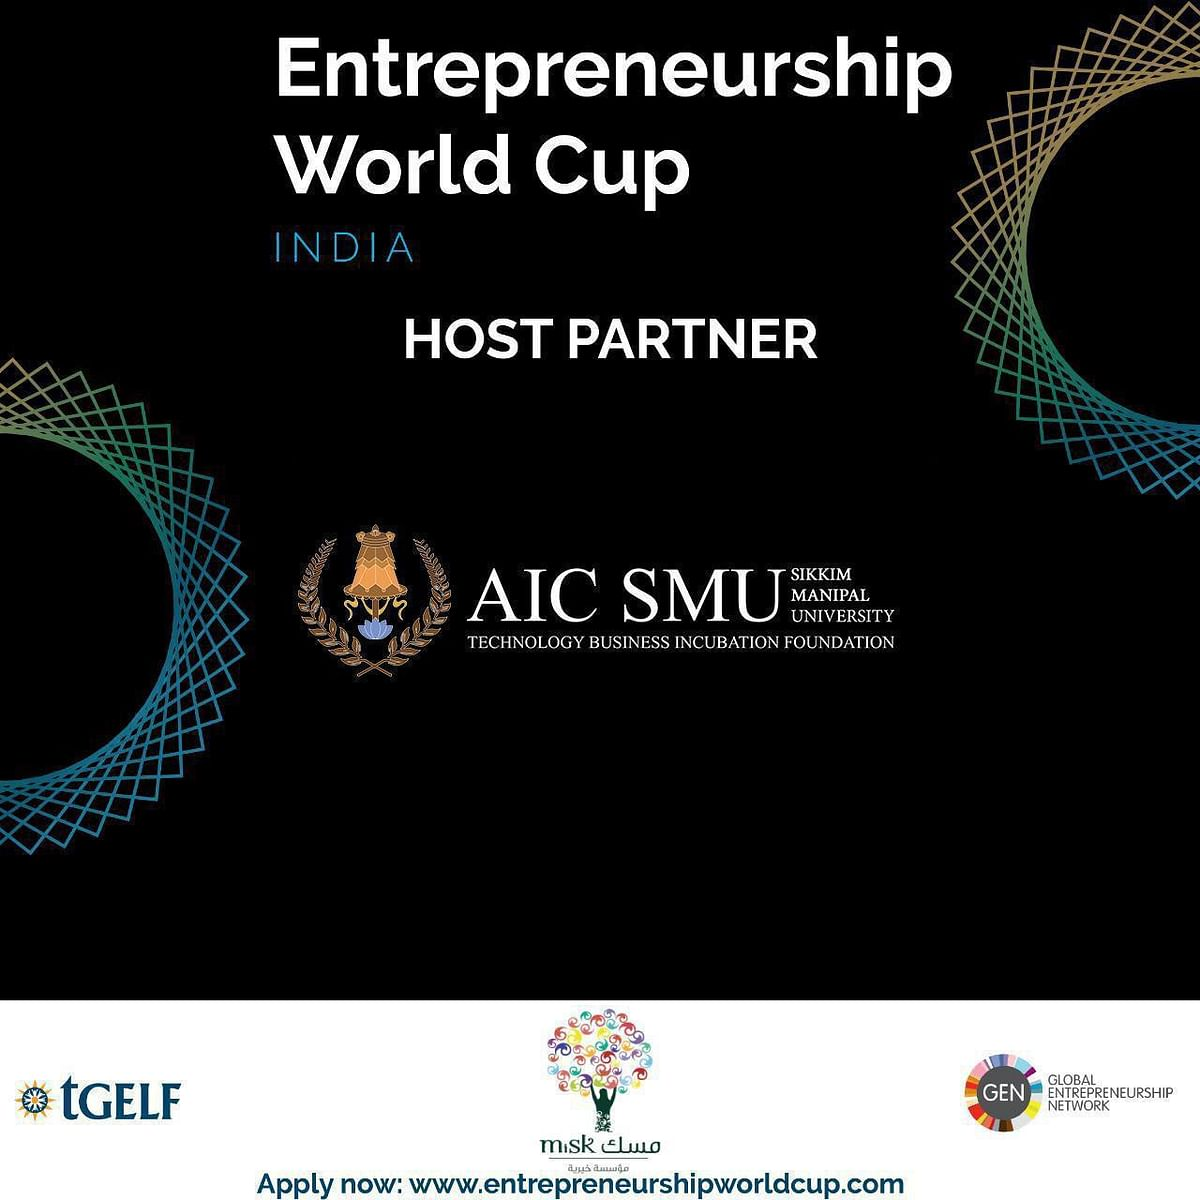 AIC-SMU is the host partner of EWC for East India region